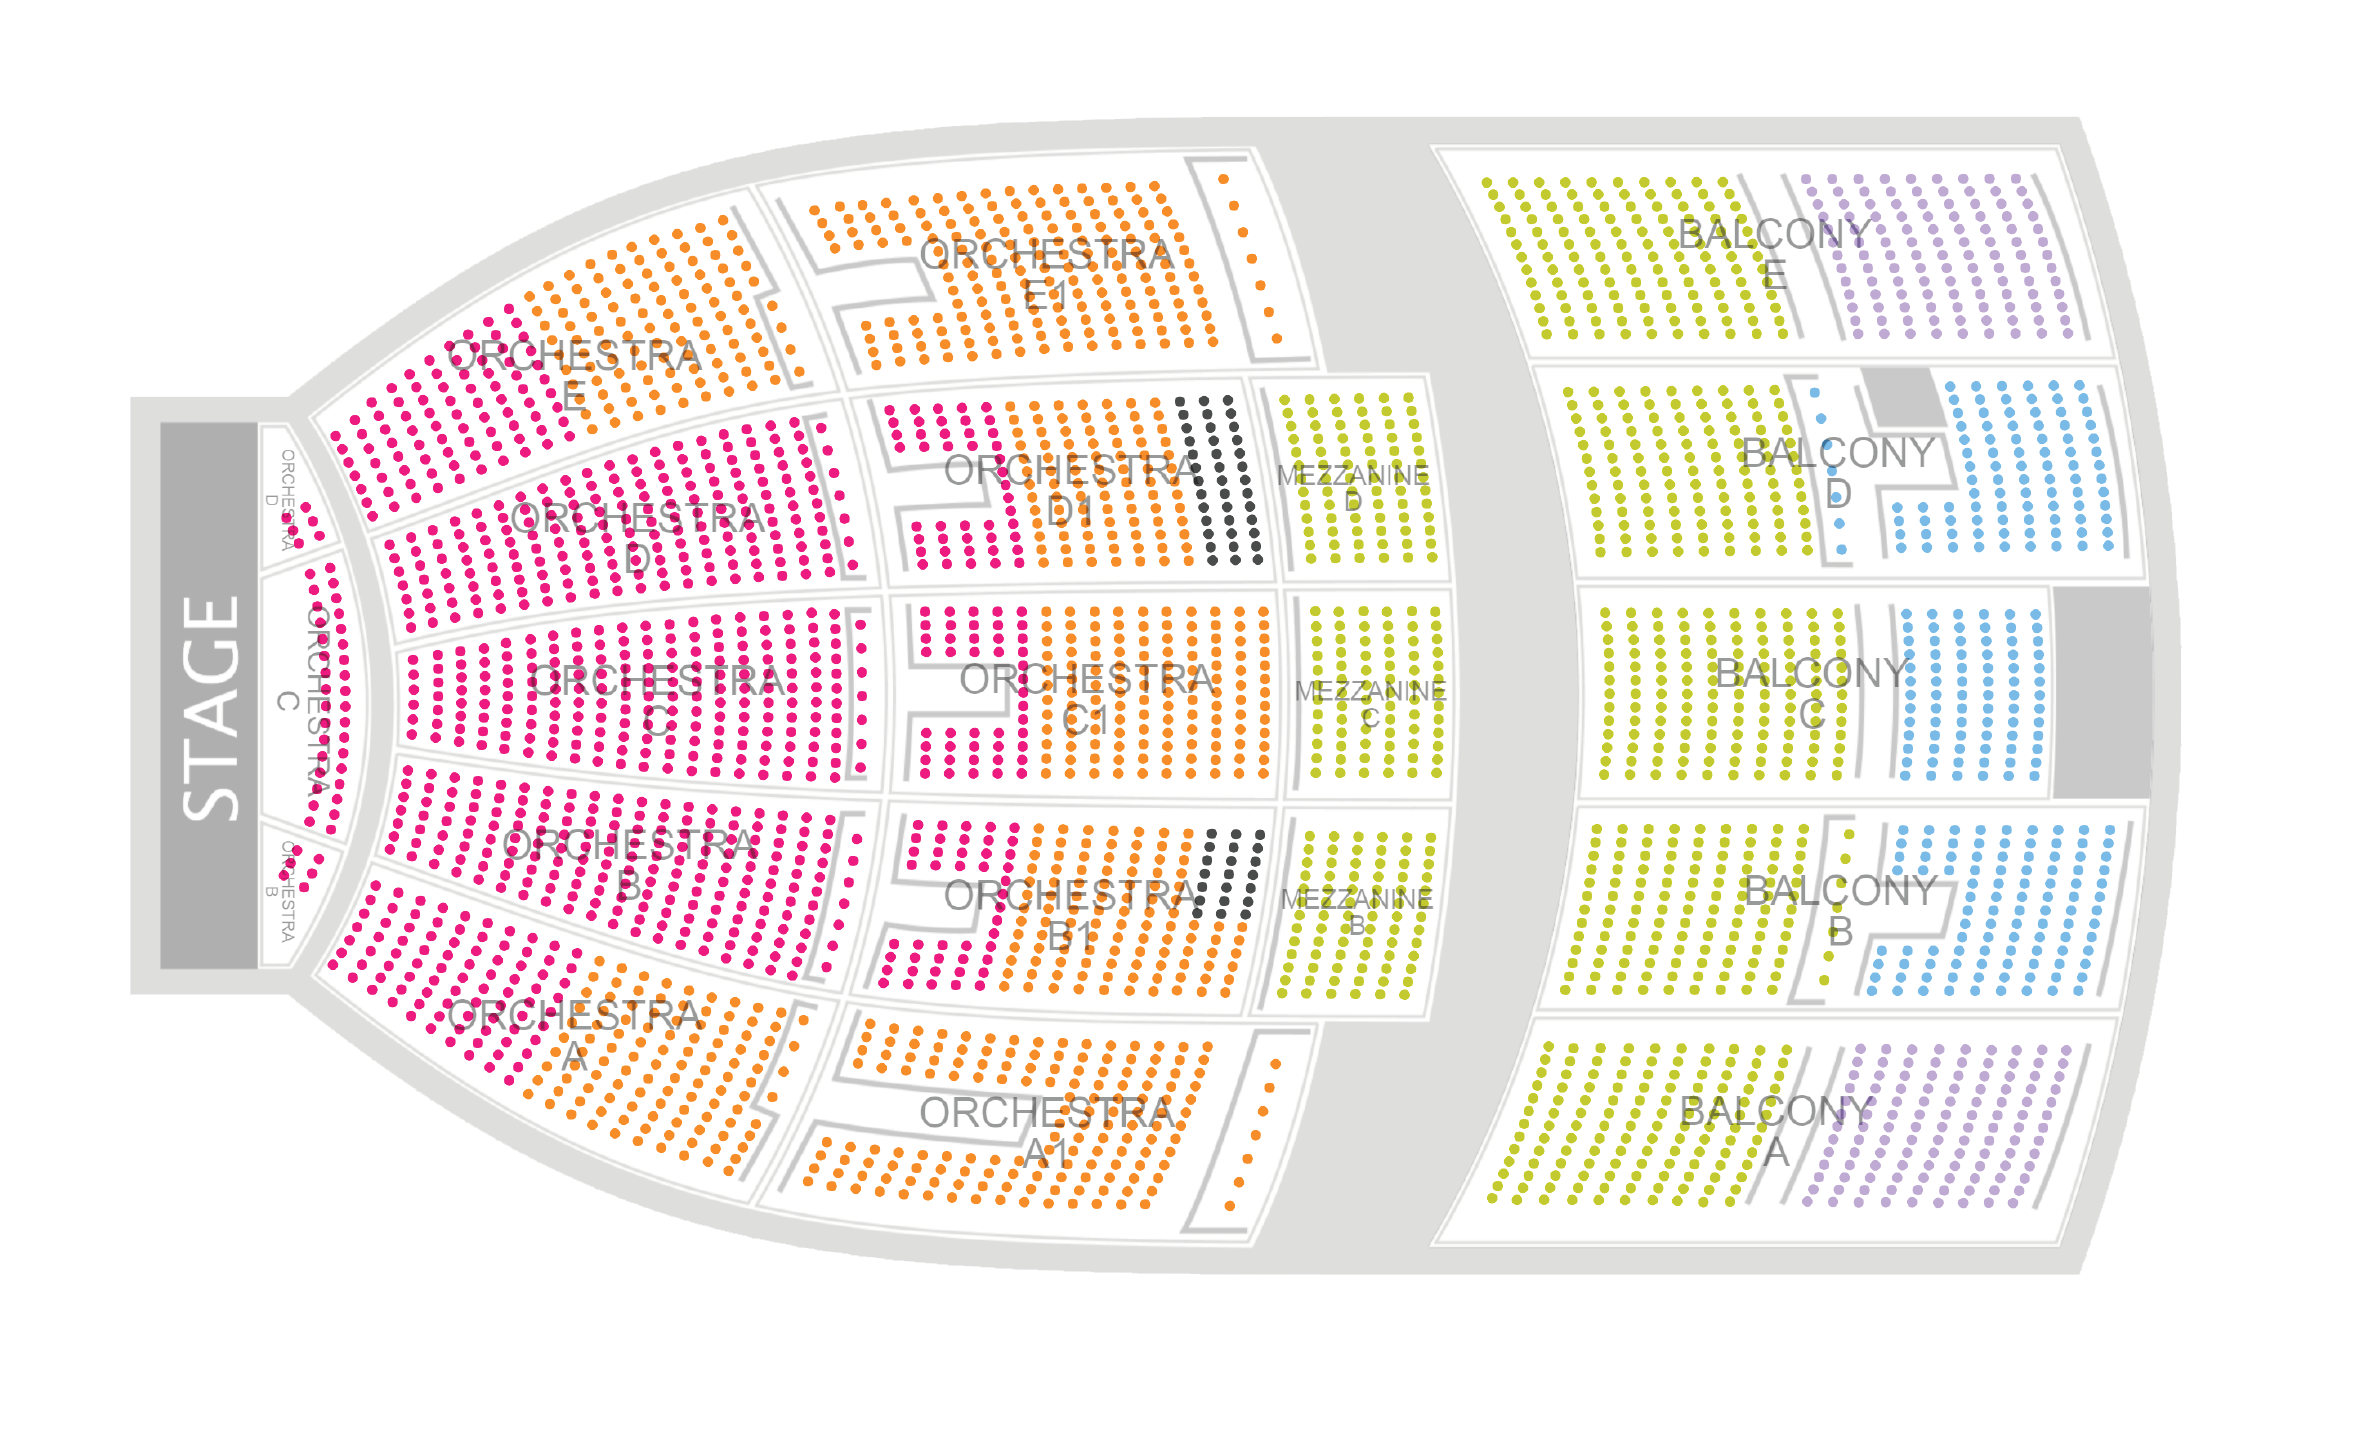 Seating Chart  Indiana University Auditorium. Half Page Ad Template. Incredible Blank Printable Invoice Template. Patient Medical History Form Template. Youtube Cover Template. Purdue University Graduate Programs. Resource Planning Template Excel. Sales Order Form Template. Ati System Disorder Template